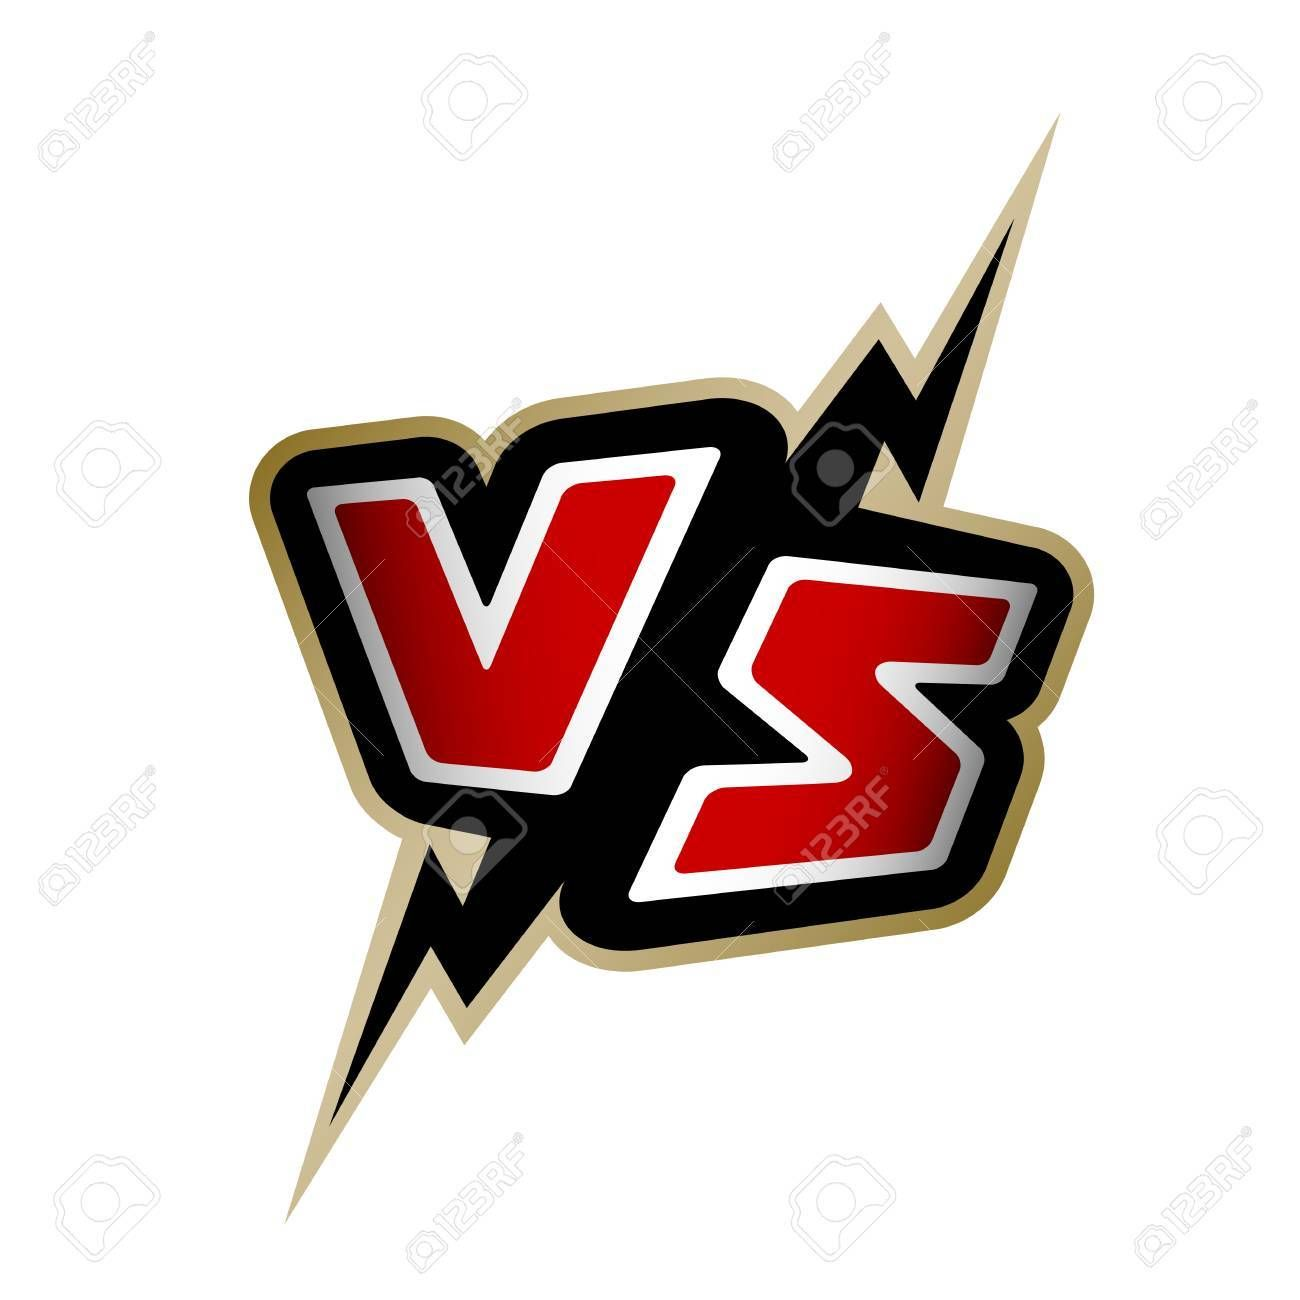 Versus Letters Vs Logo Vector Illustration On A White Background Royalty Free Cliparts Vectors And Stock Vs Logo Illustrator Inspiration Vector Illustration